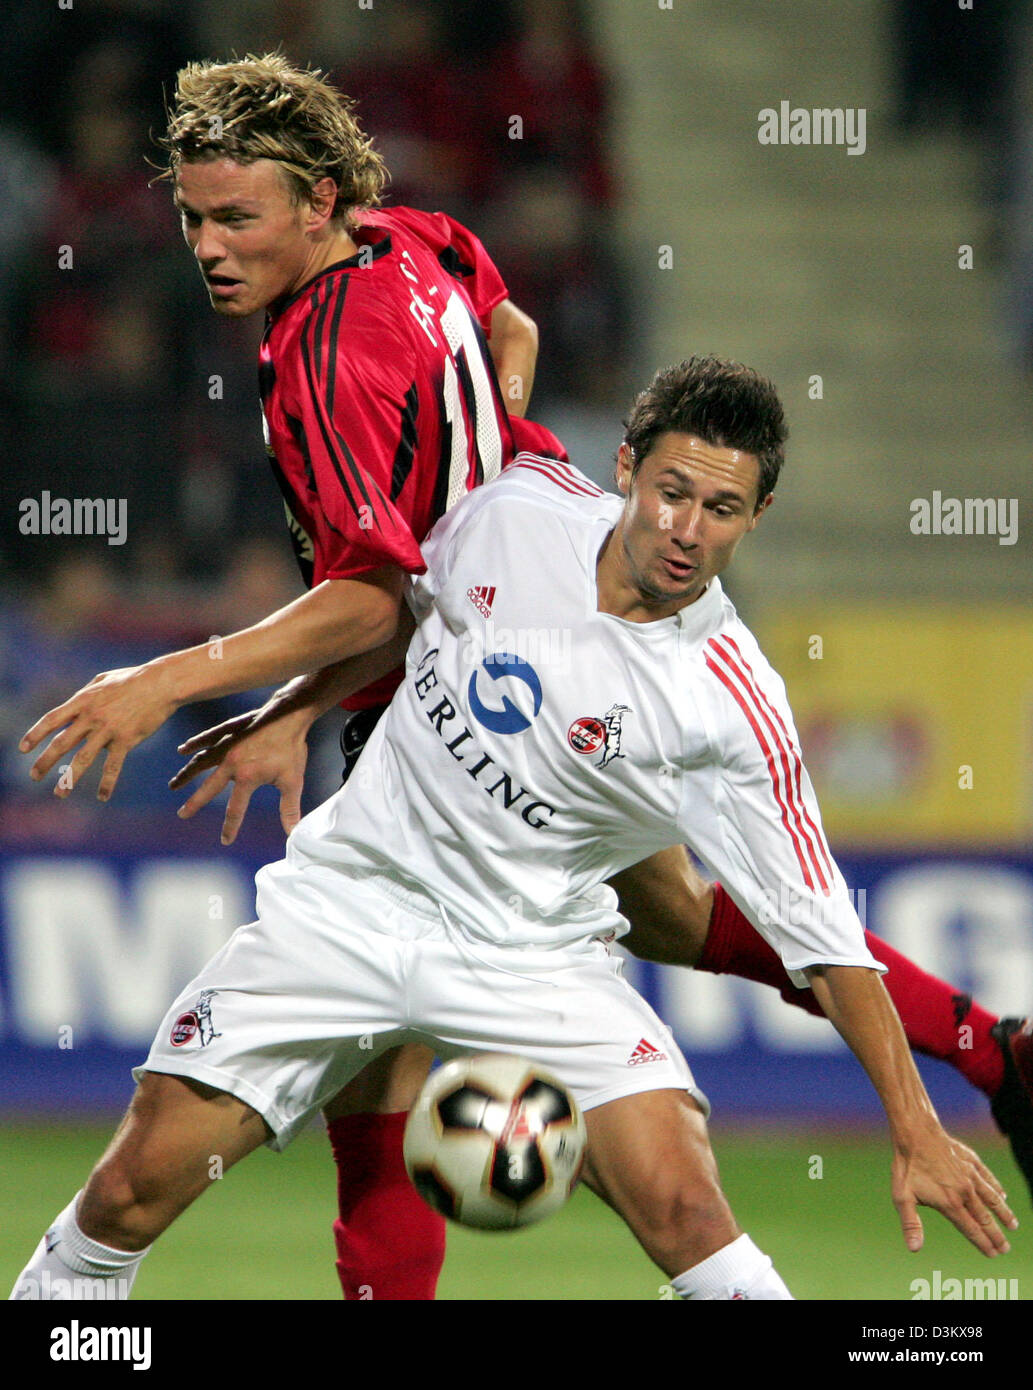 (dpa) - Clemens Fritz (L, back) of Bayer Leverkusen and Albert Streit  (front) of FC Cologne vie for the ball during - Stock Image